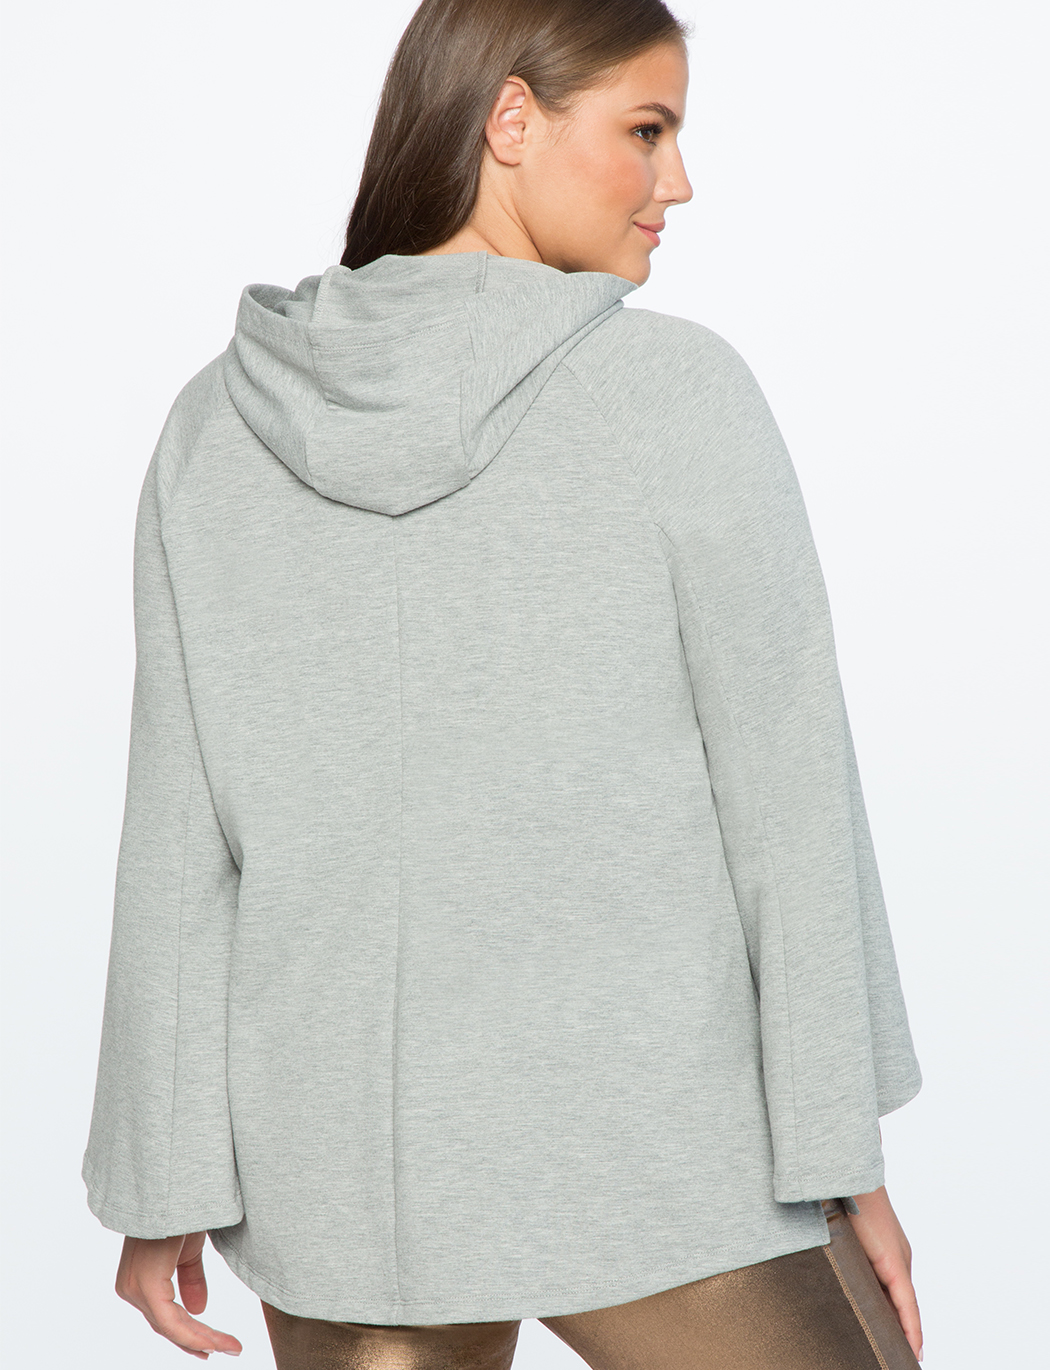 Flare Sleeve Hooded Sweatshirt